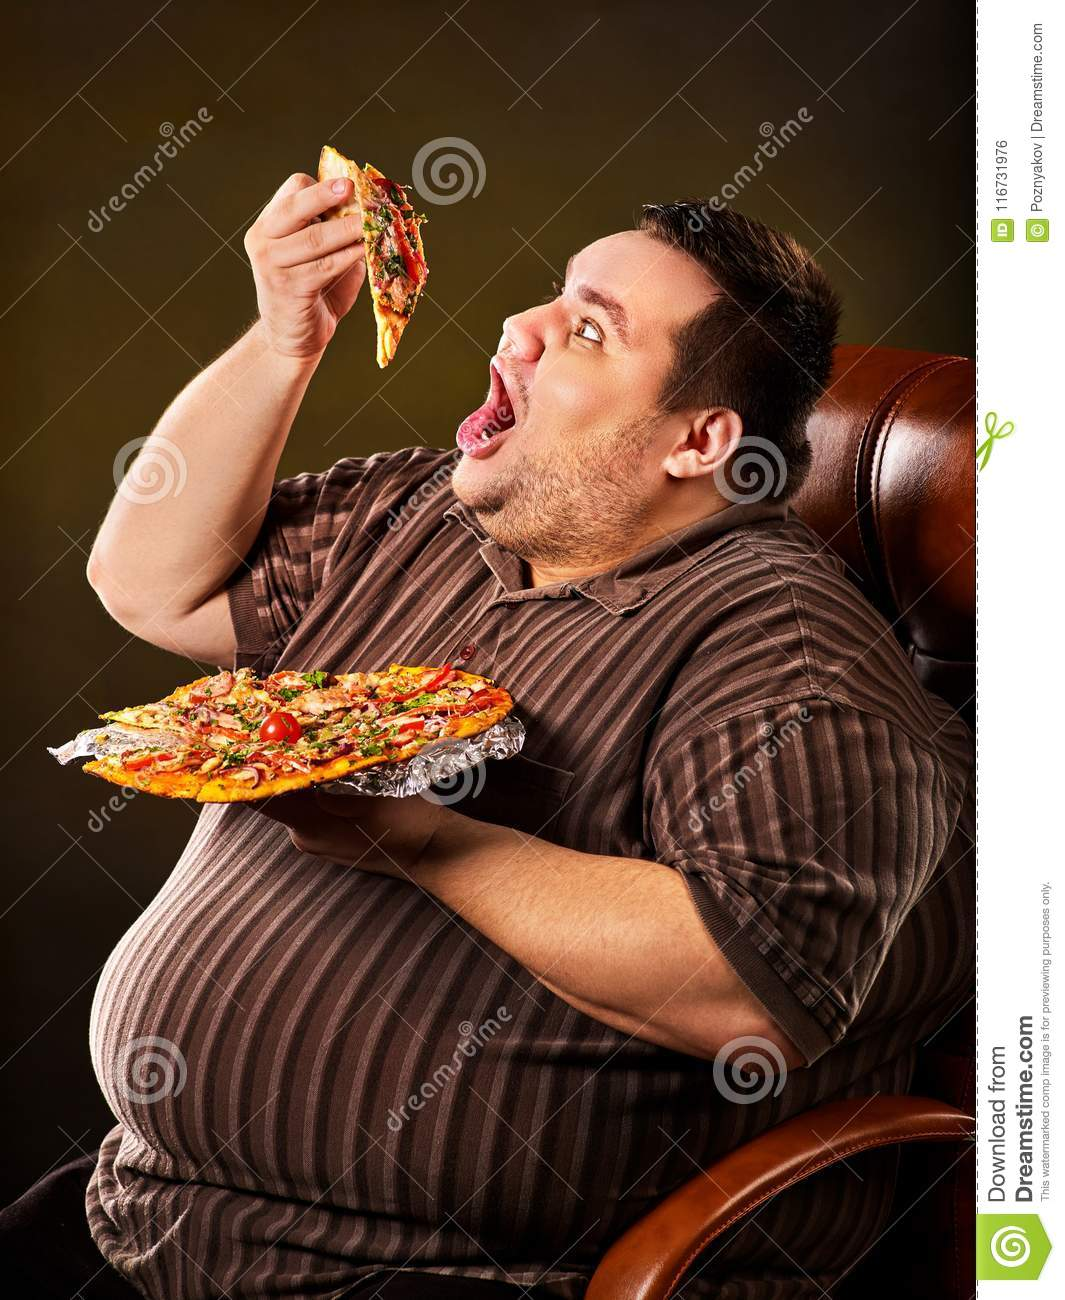 Fat Man Eating Fast Food Slice Pizza Breakfast For Overweight Person Stock Photo Image Of Obese Snacks 116731976